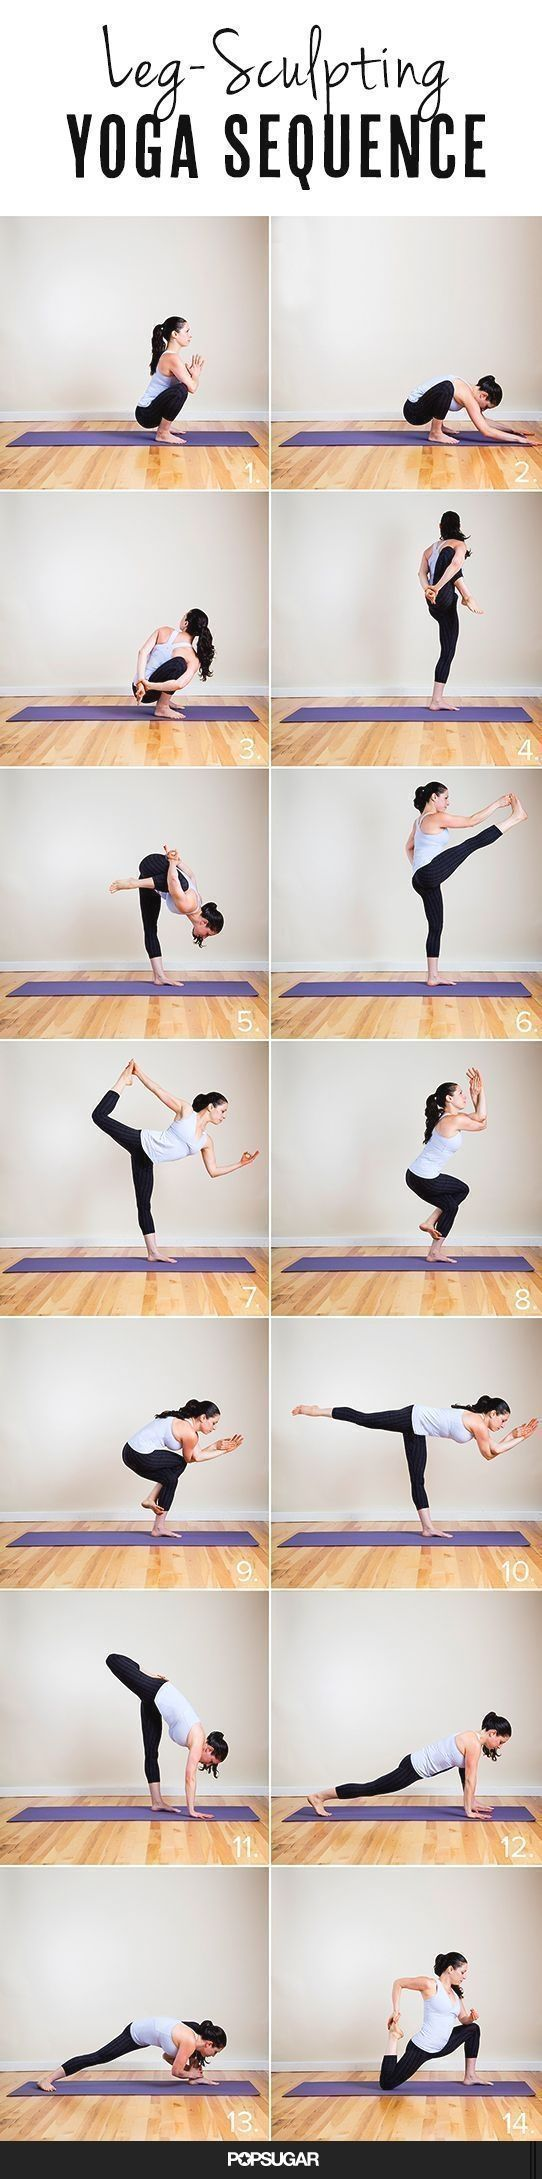 #beneficios #aesthetic #stretches #wallpaper #handstand #benefits #ashtanga #fitness #forkids #frase...